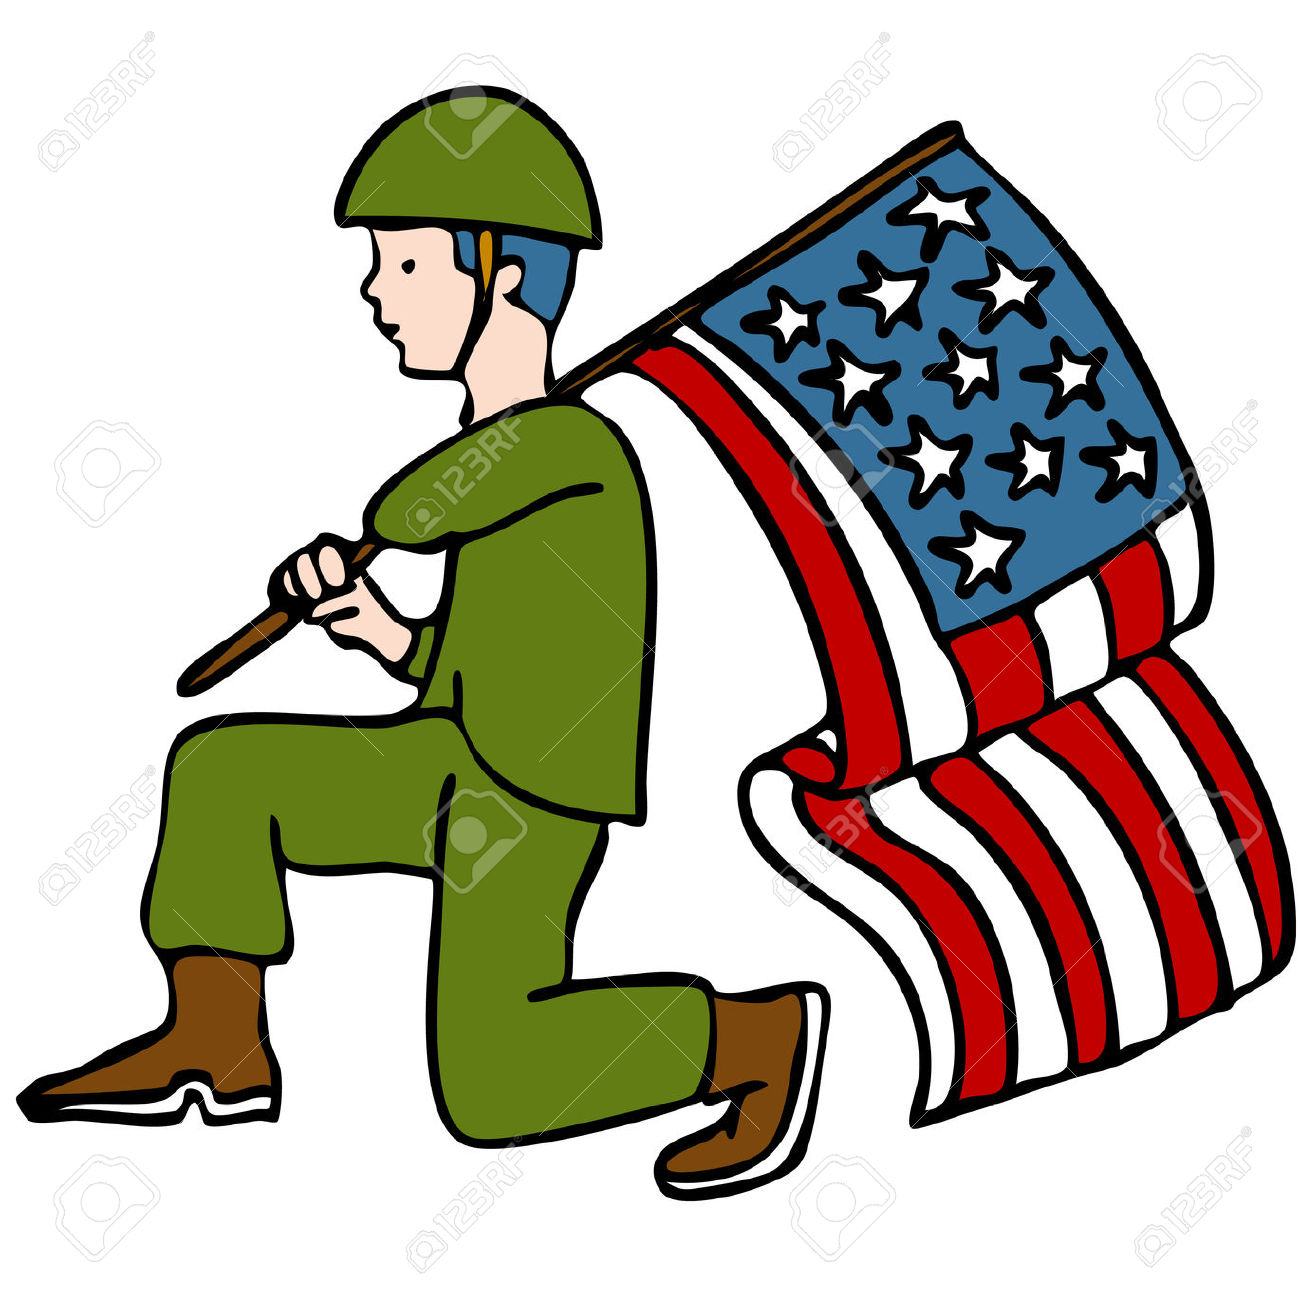 veteran soldier: An image of a | Clipart Panda - Free Clipart Images